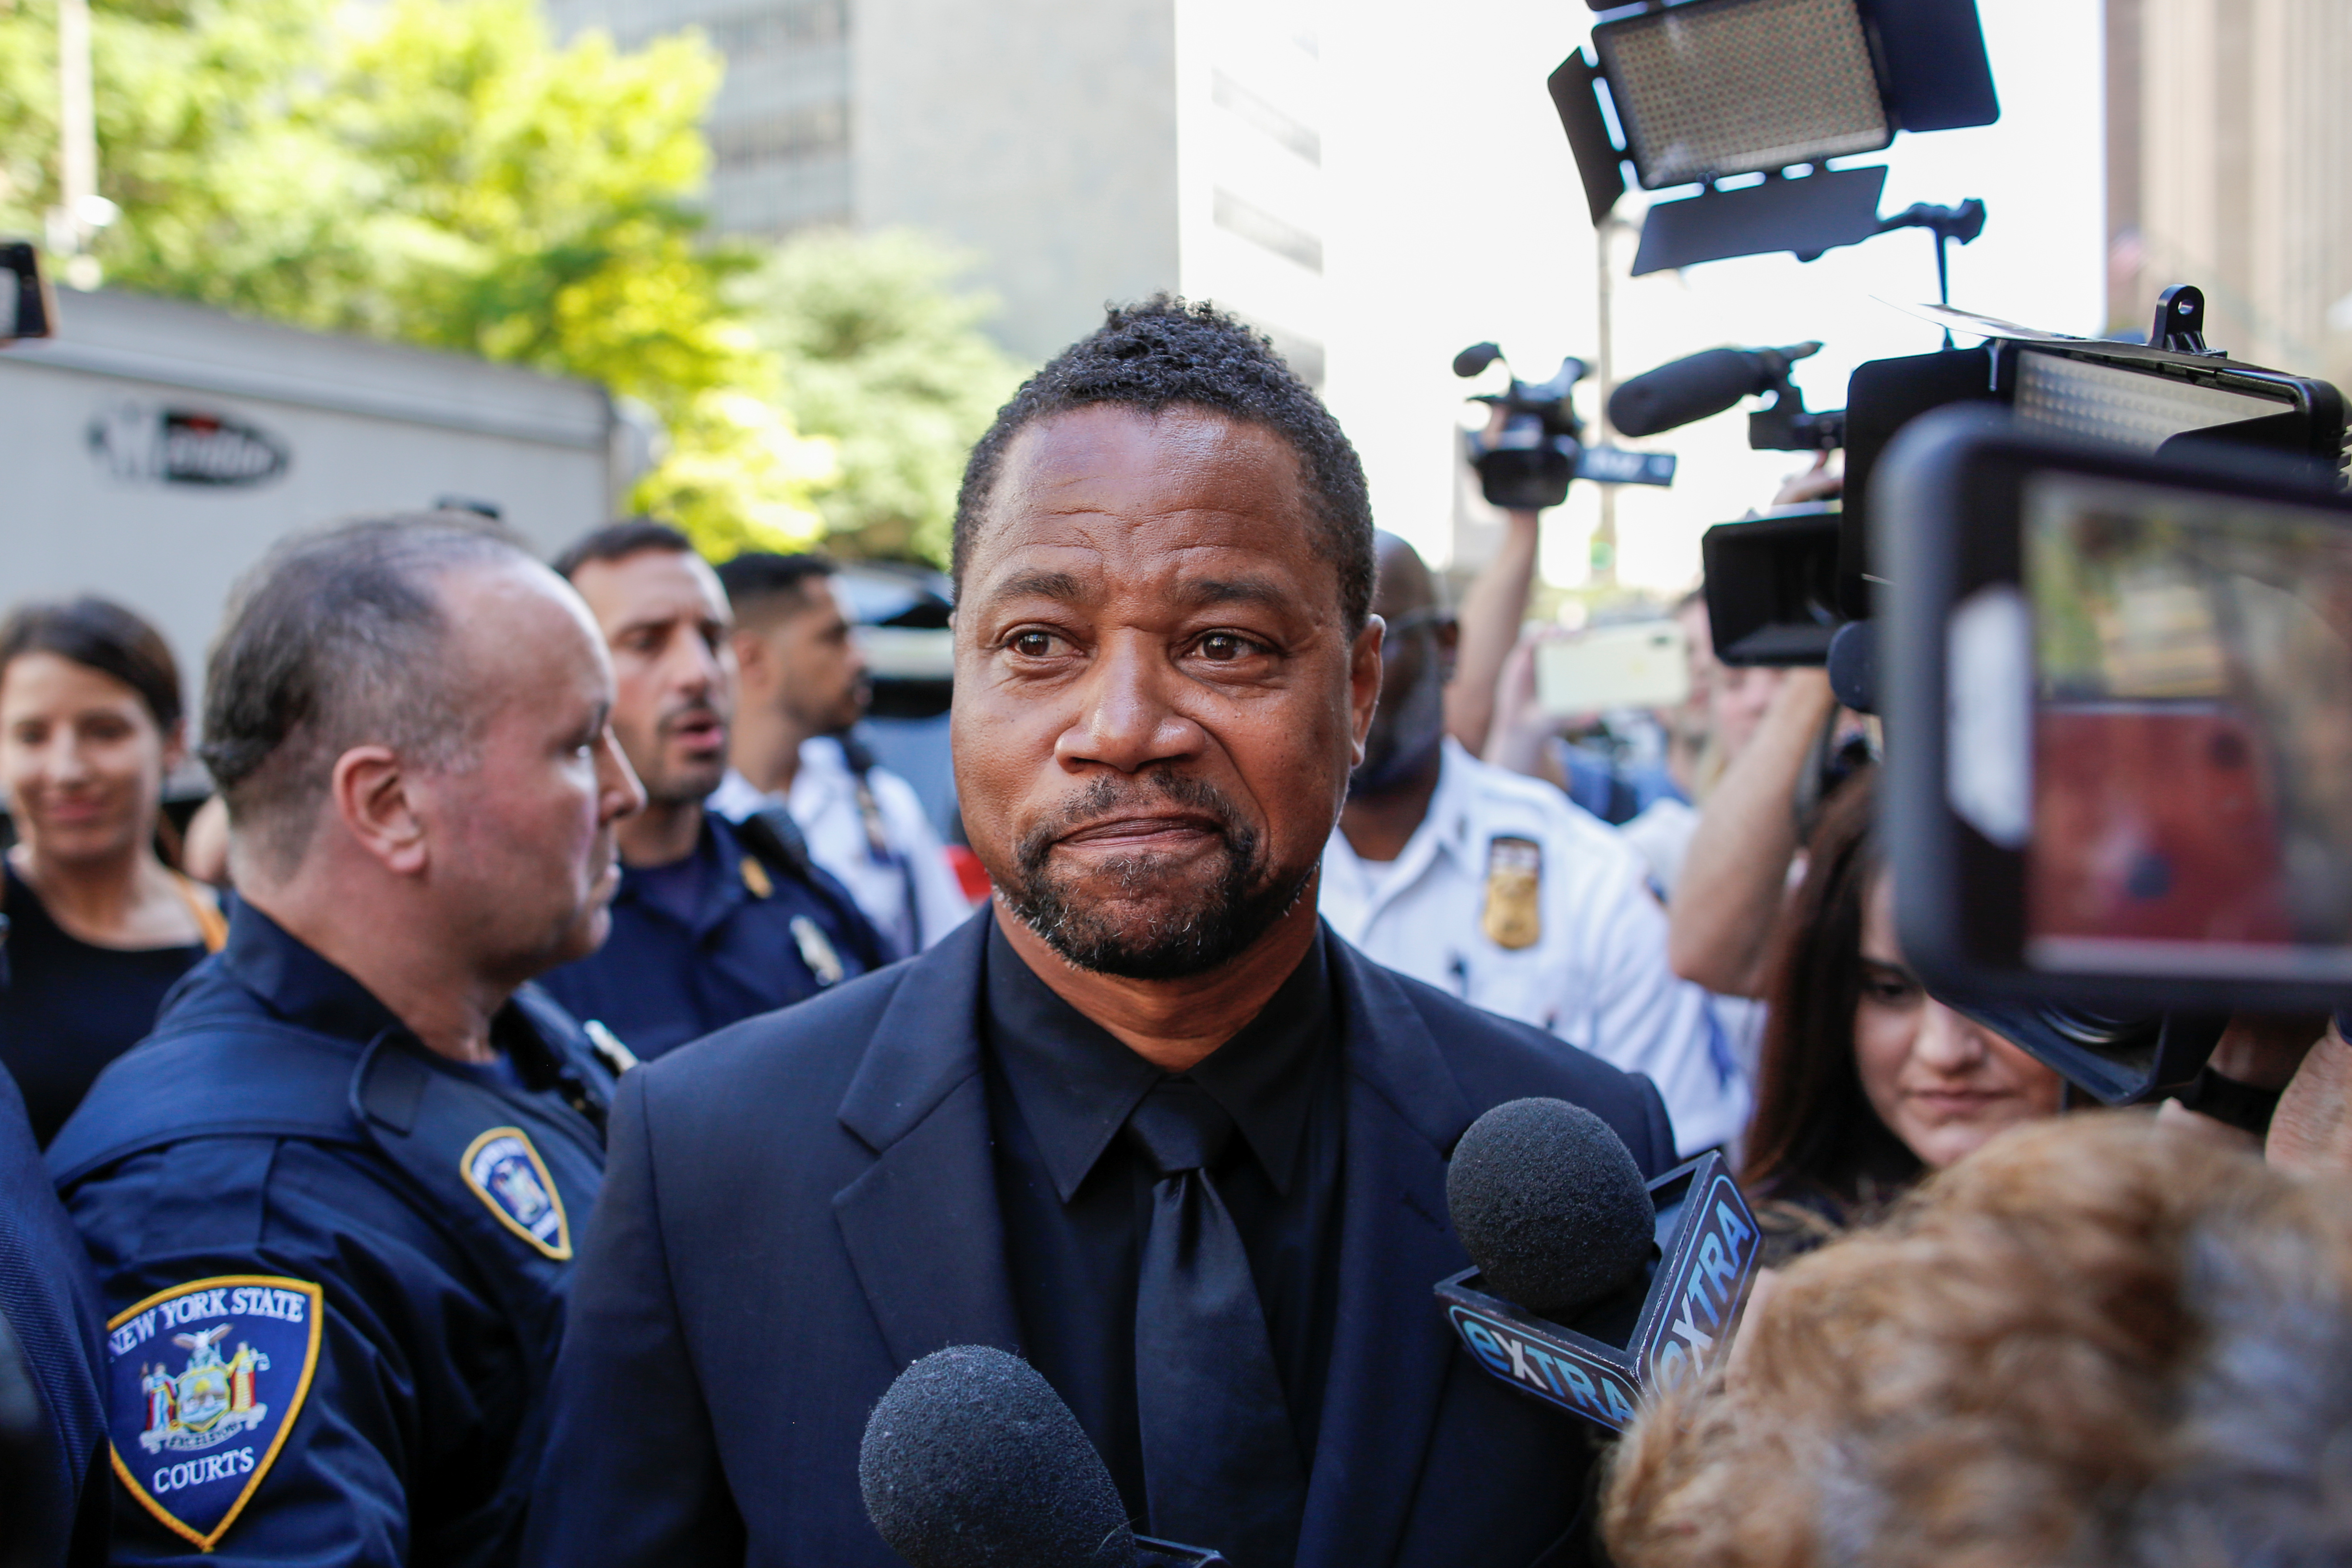 Actor Cuba Gooding Jr. is surrounded by media as he leaves New York Criminal Court in the Manhattan borough of New York City, U.S., June 26, 2019. REUTERS/Eduardo Munoz - RC1FAF1F3E70